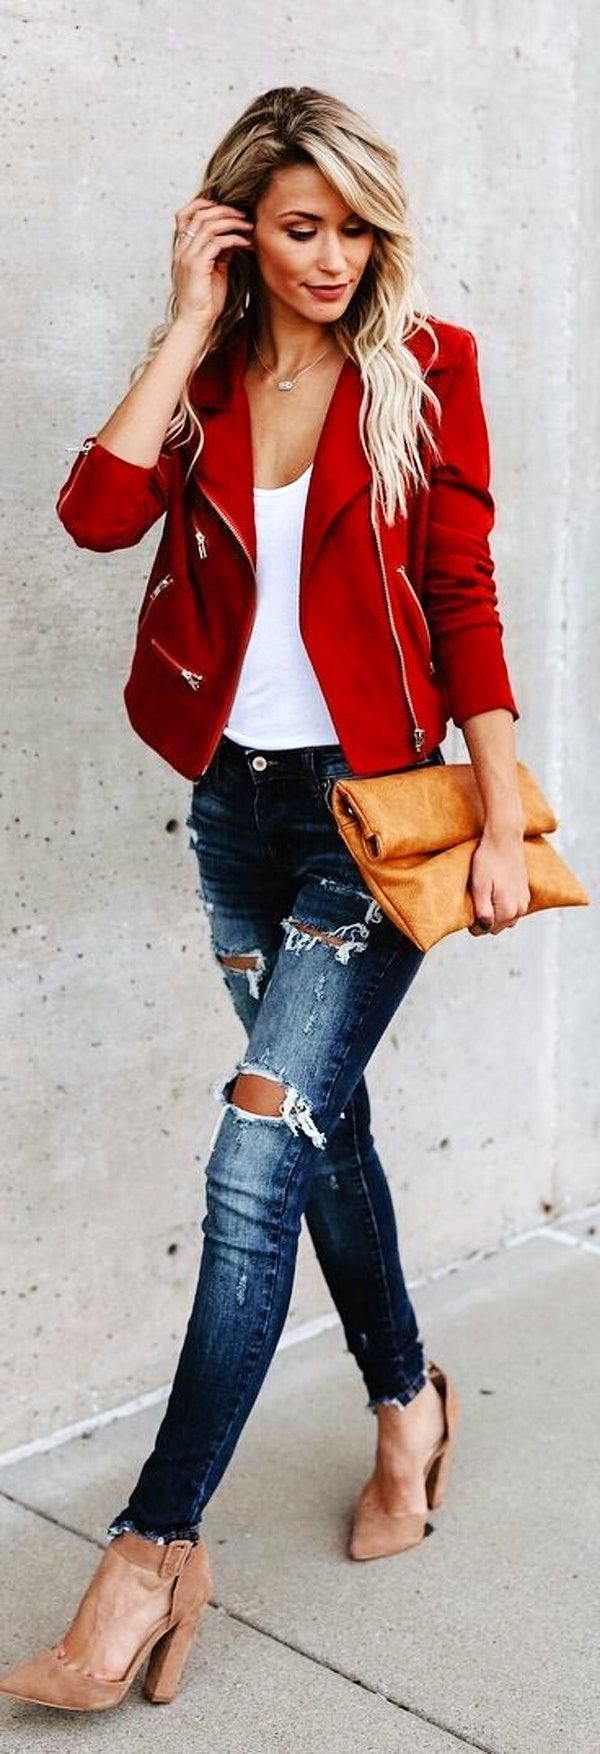 #winter #outfits red zip-up coat and distressed blue fitted jeans #winteroutfits